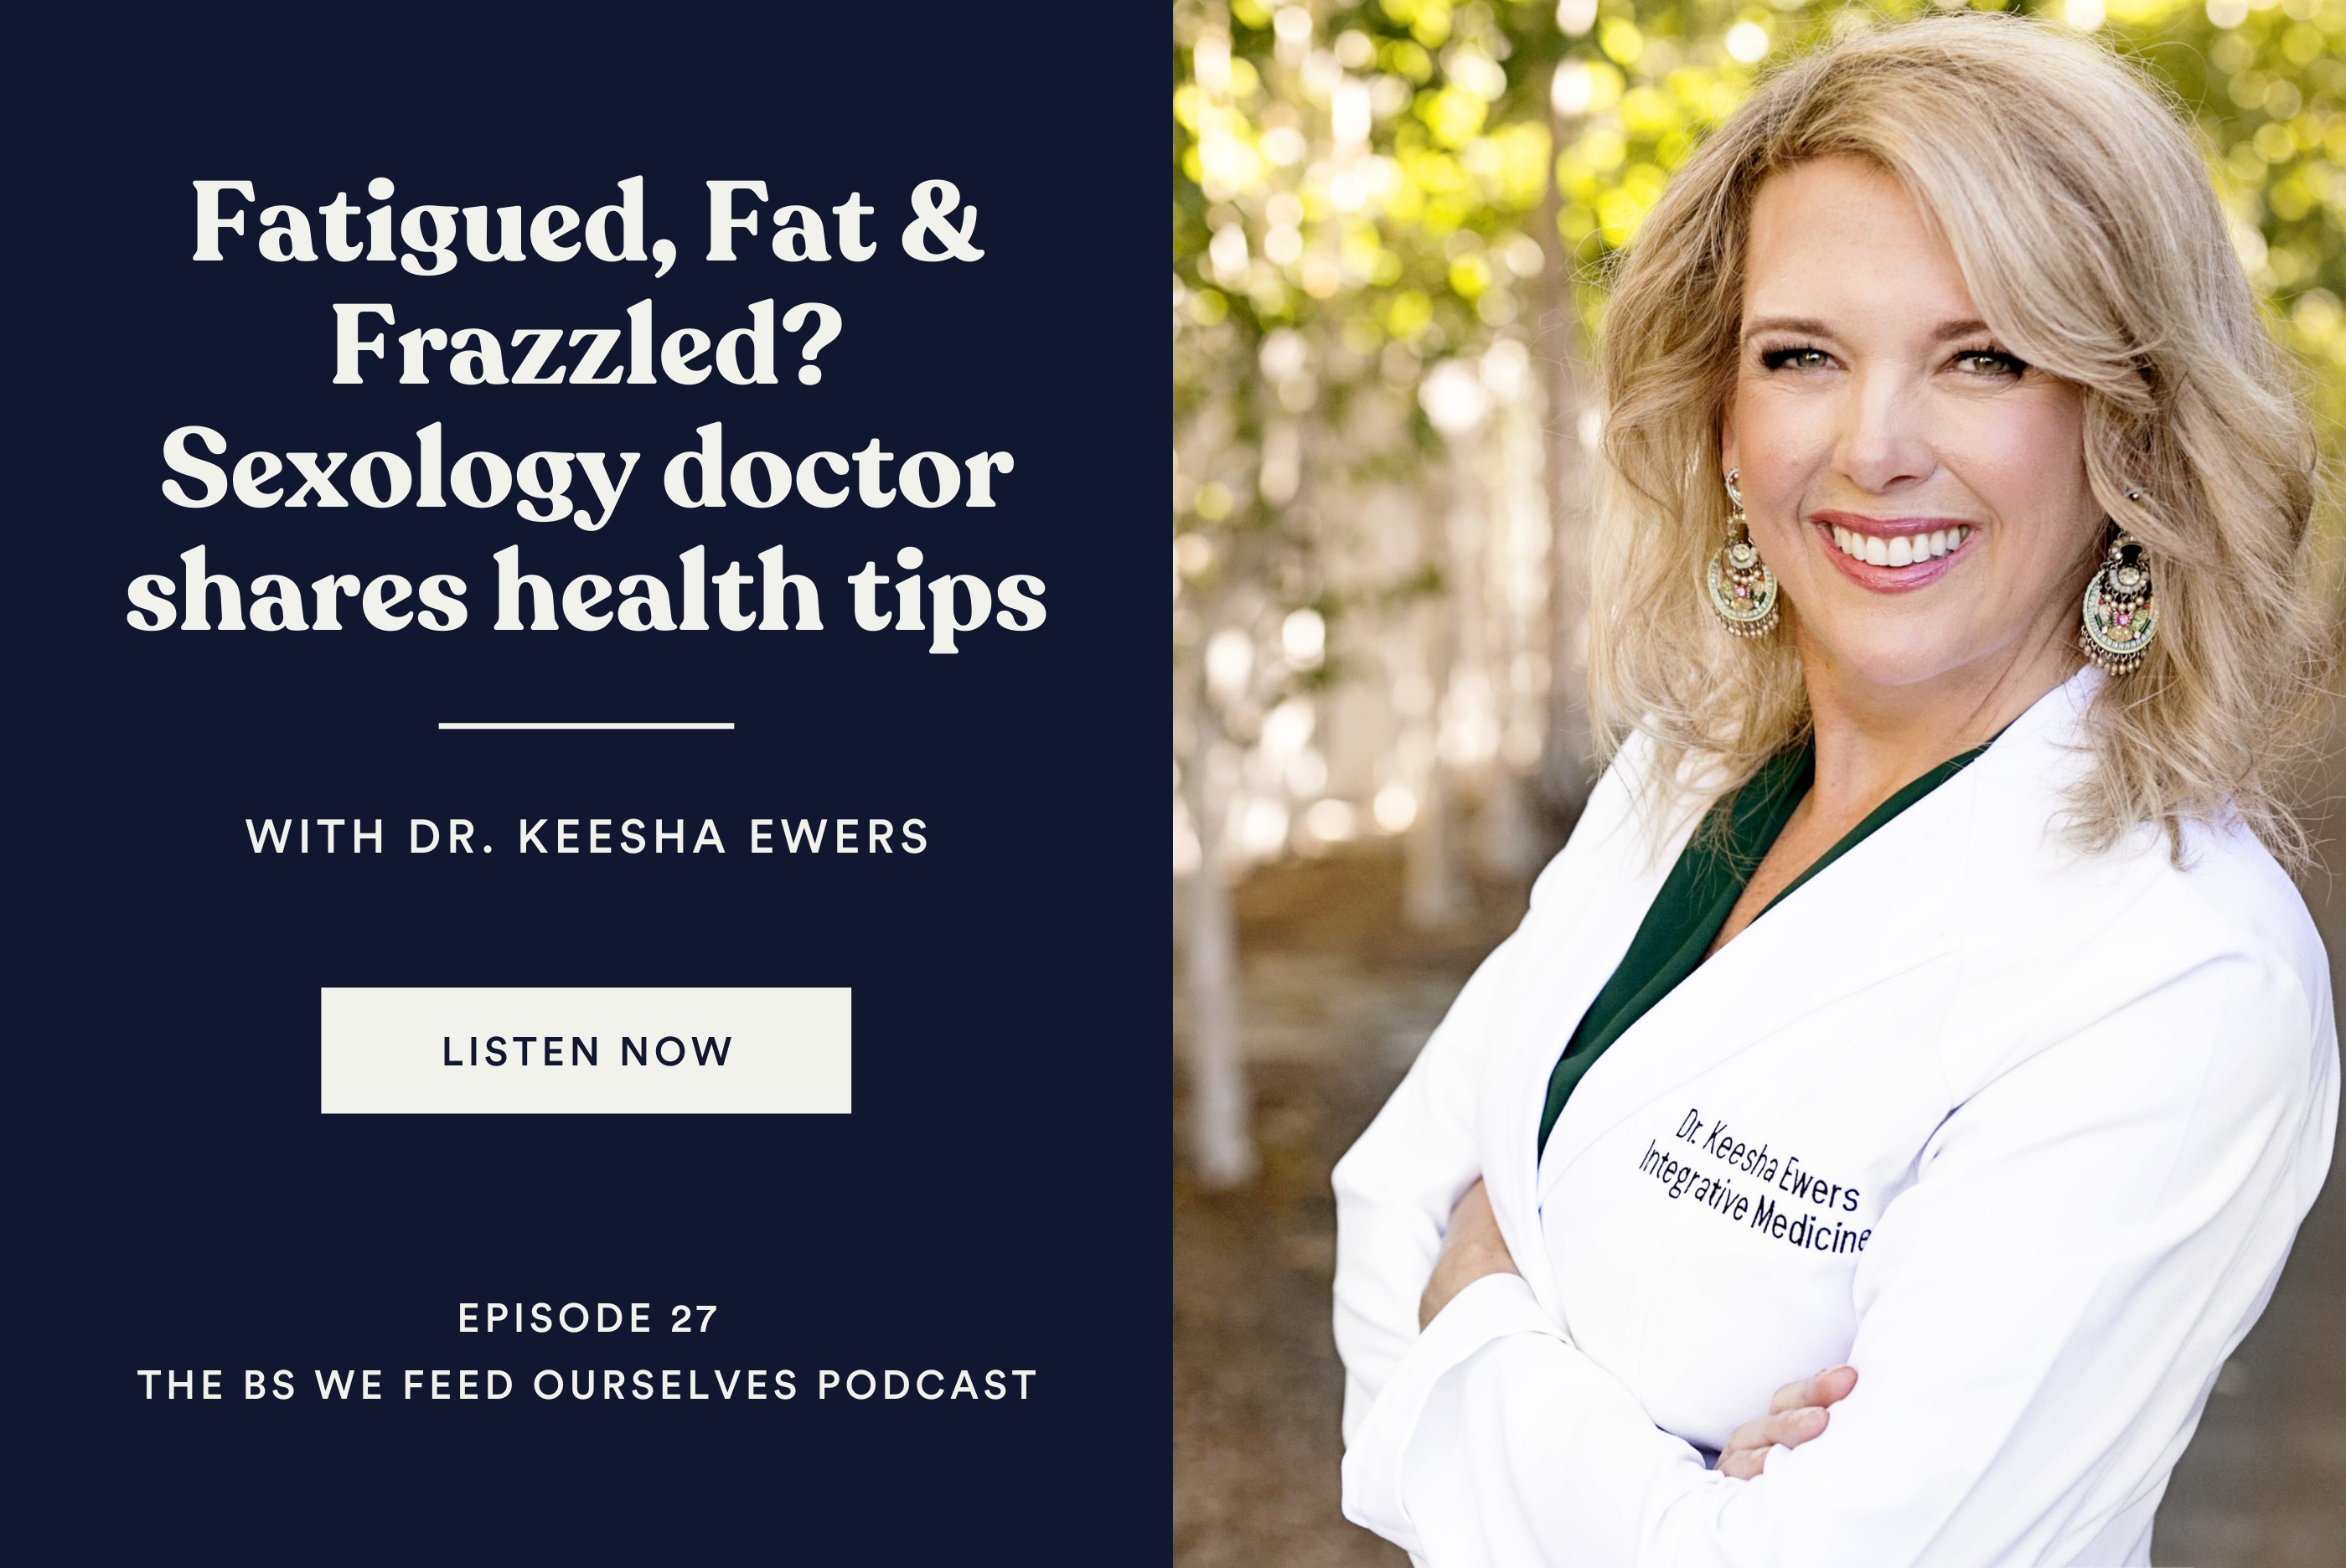 Fatigued, Fat & Frazzled? Sexology doctor shares health tips related article image